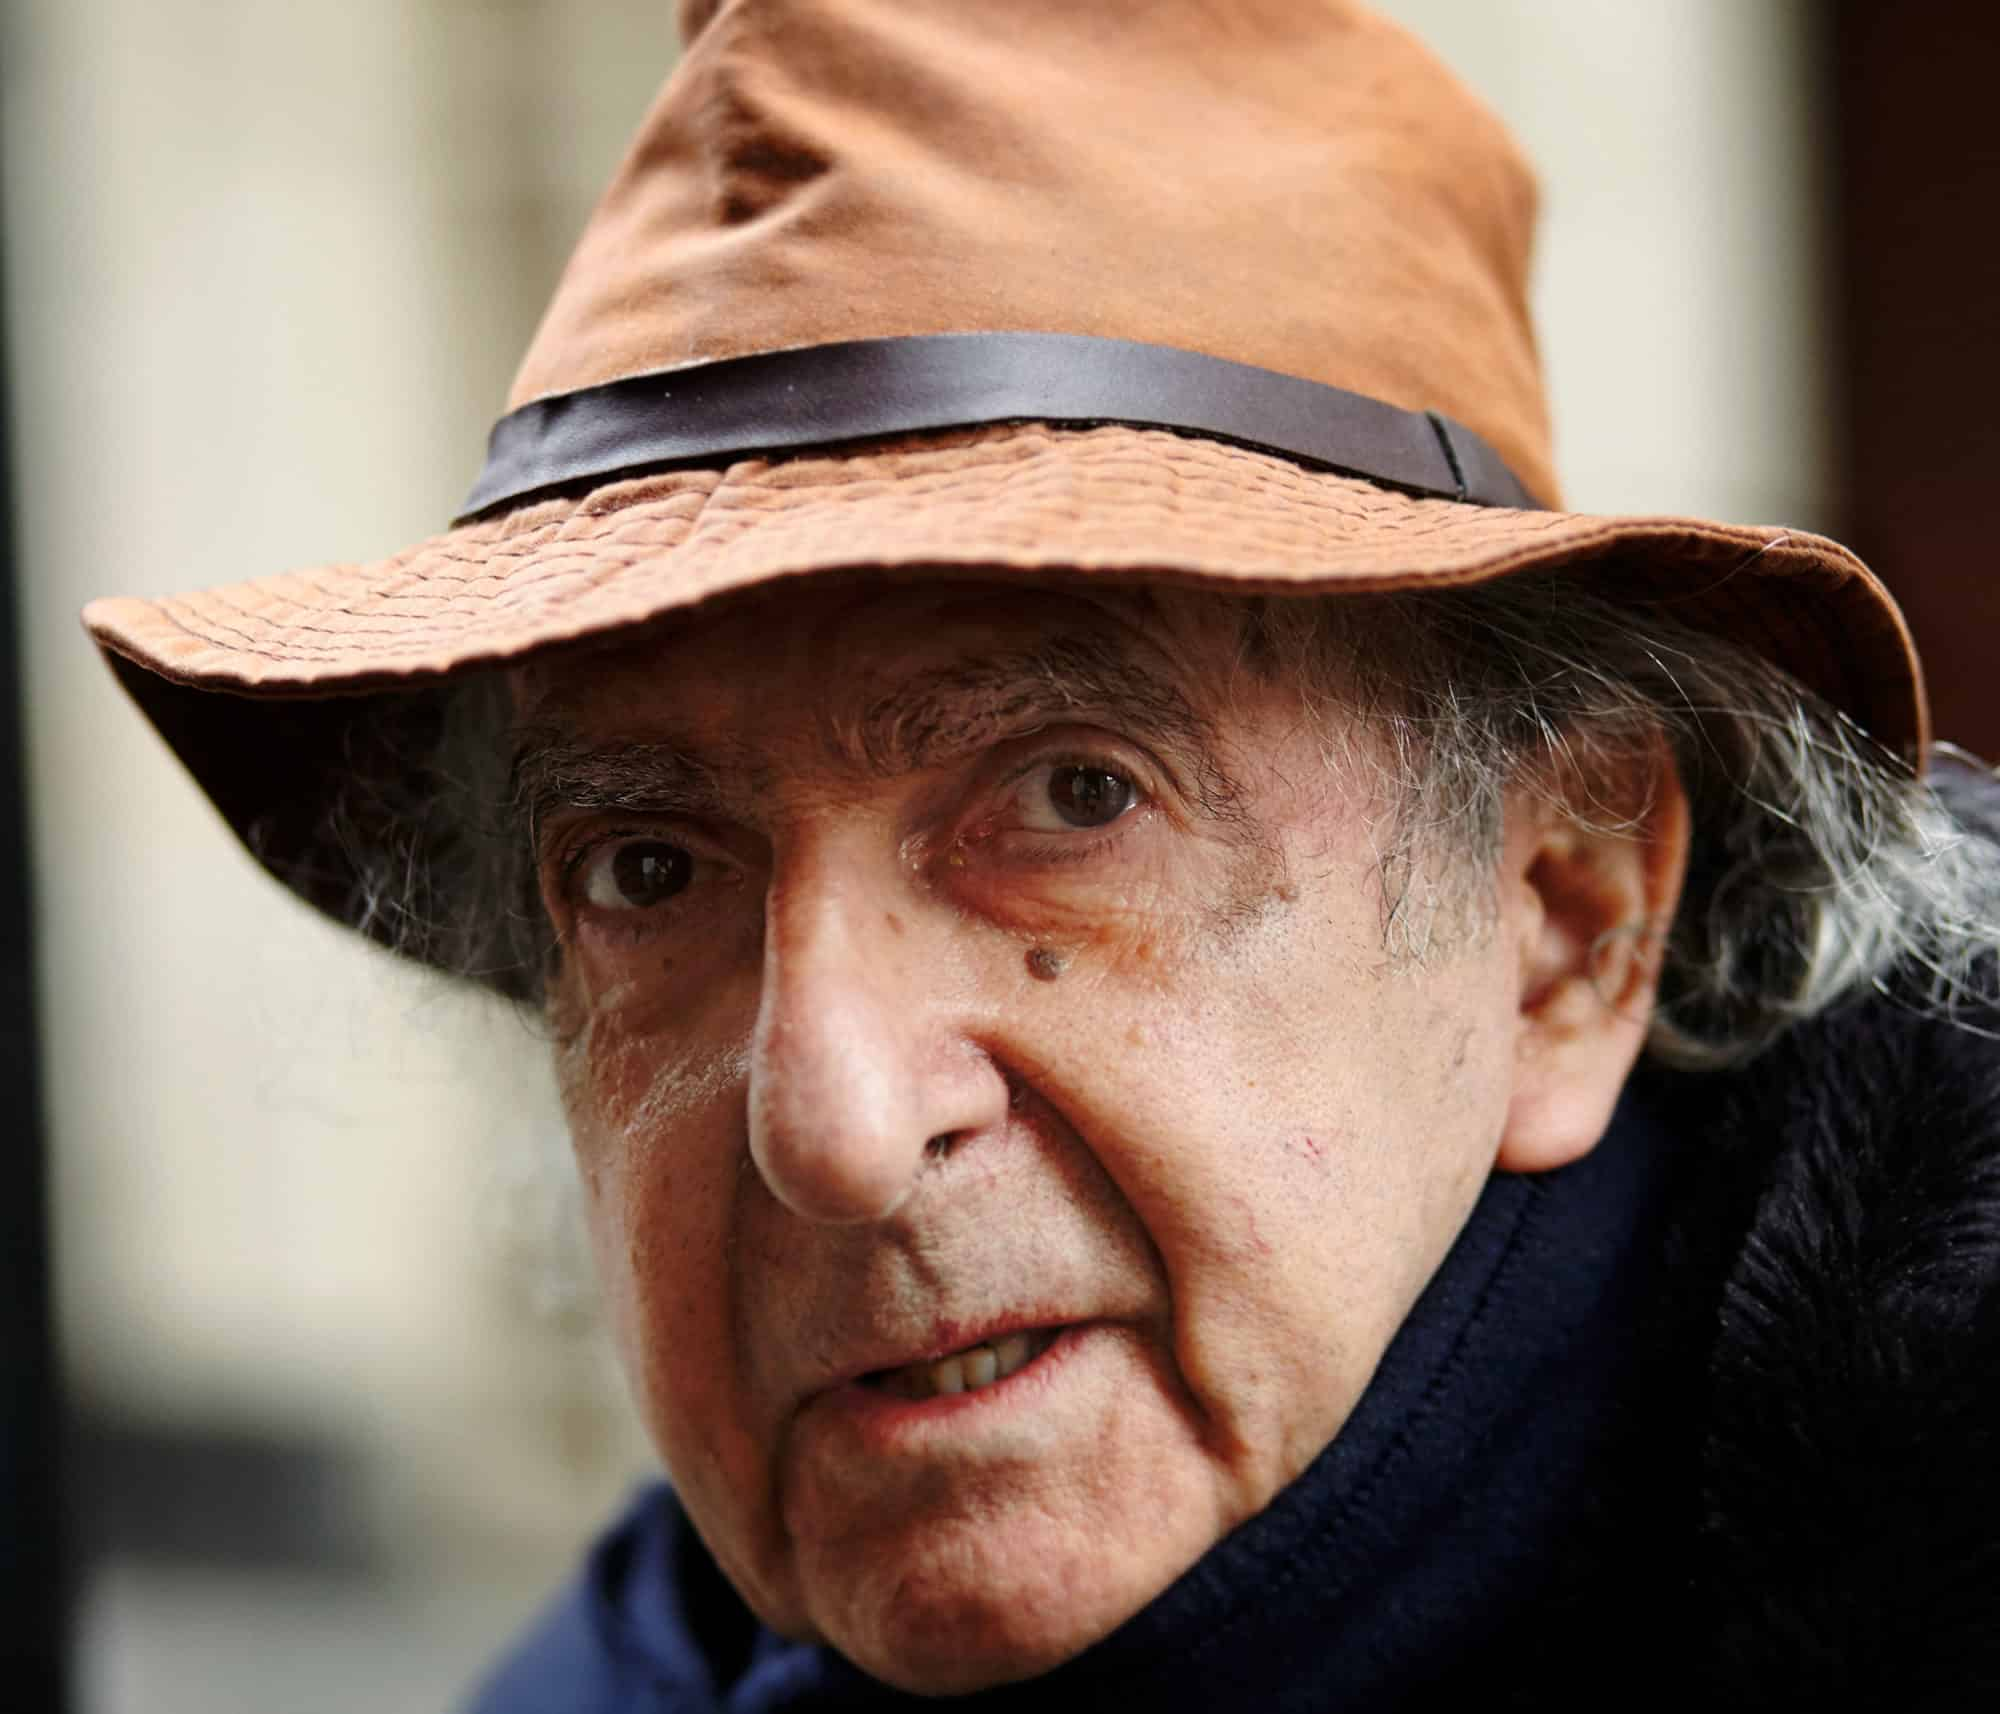 """Close-up intimate portrait Neil Libbert. Senior photo-journalist wearing brown hat with leather strap. Grey hair. Looking directly into camera. Blurry background."""